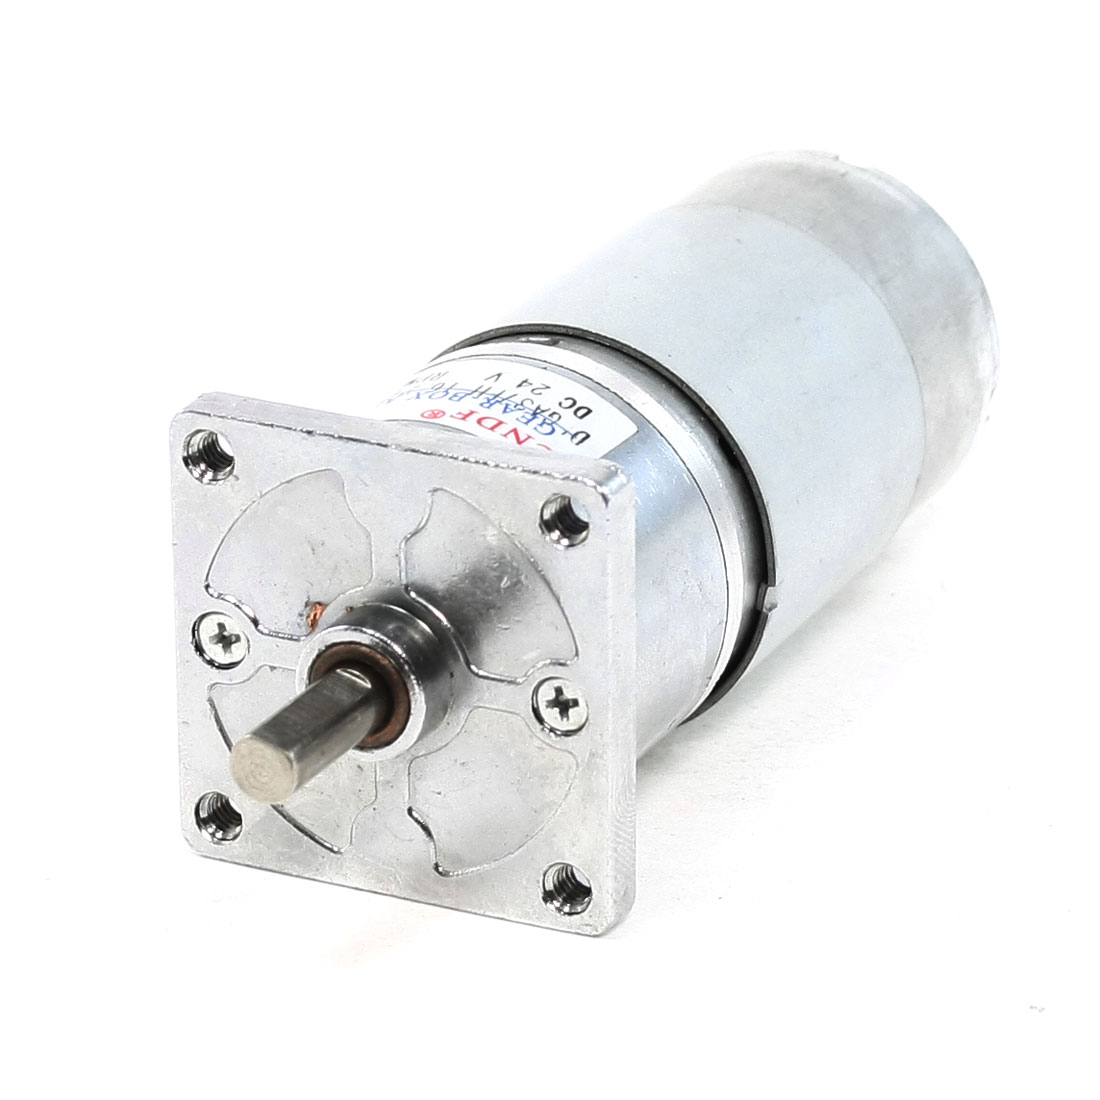 DC 24V 200RPM 6mmx15mm Shaft 38mm Diameter Electric Power Geared Motor